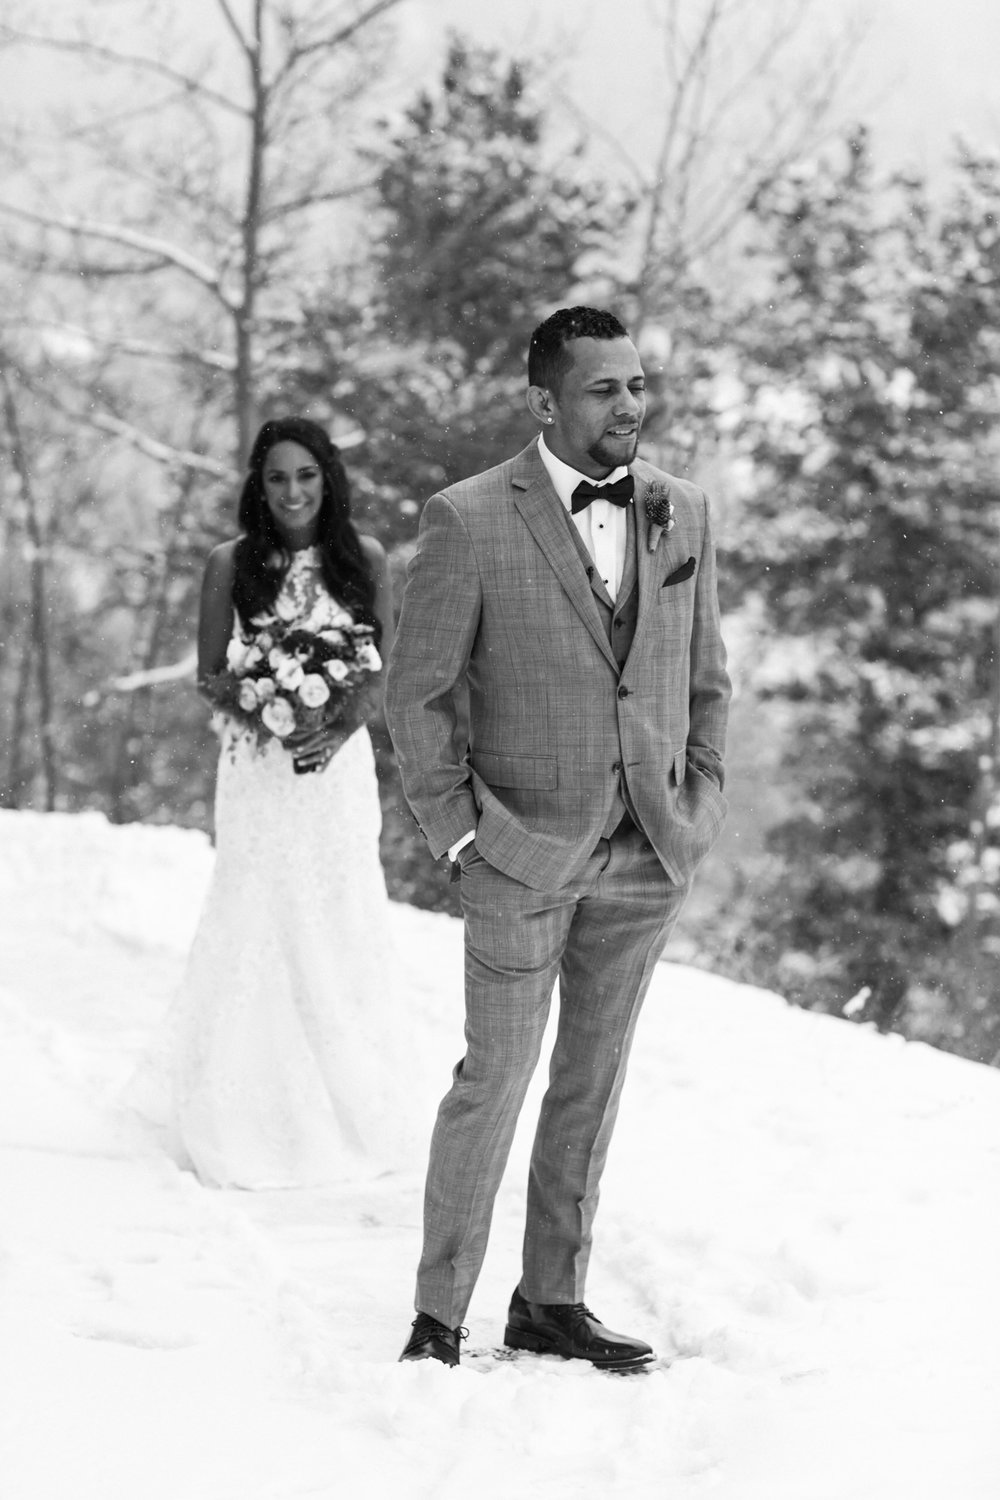 Bride behind groom on snowy mountain side in Brekenridge Colorado wedding.